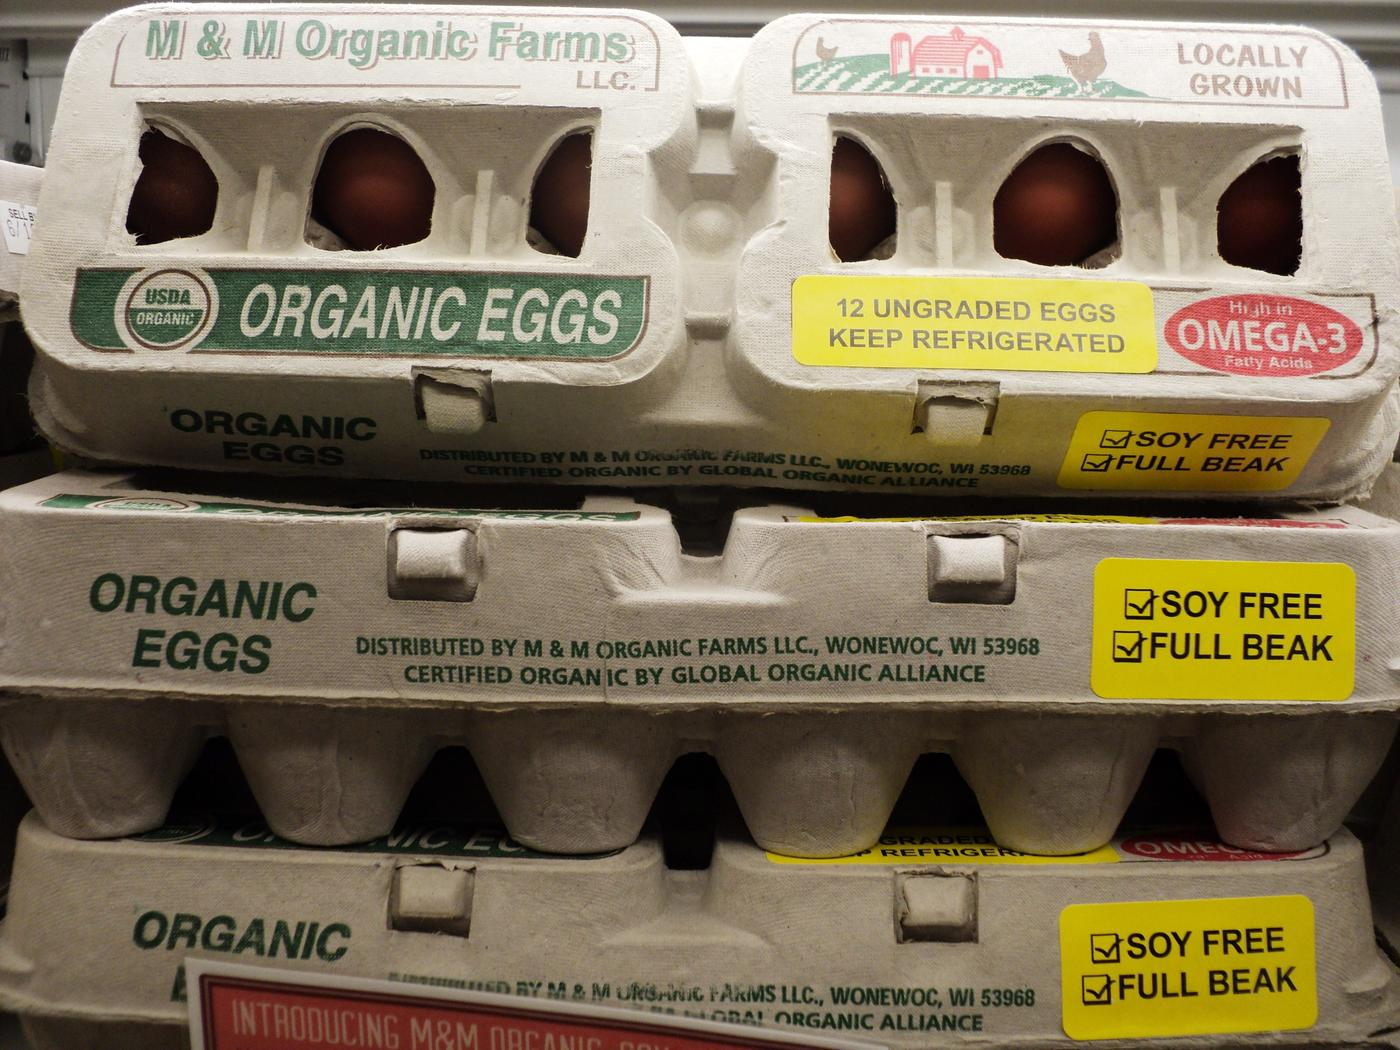 M&M Organic Farm eggs